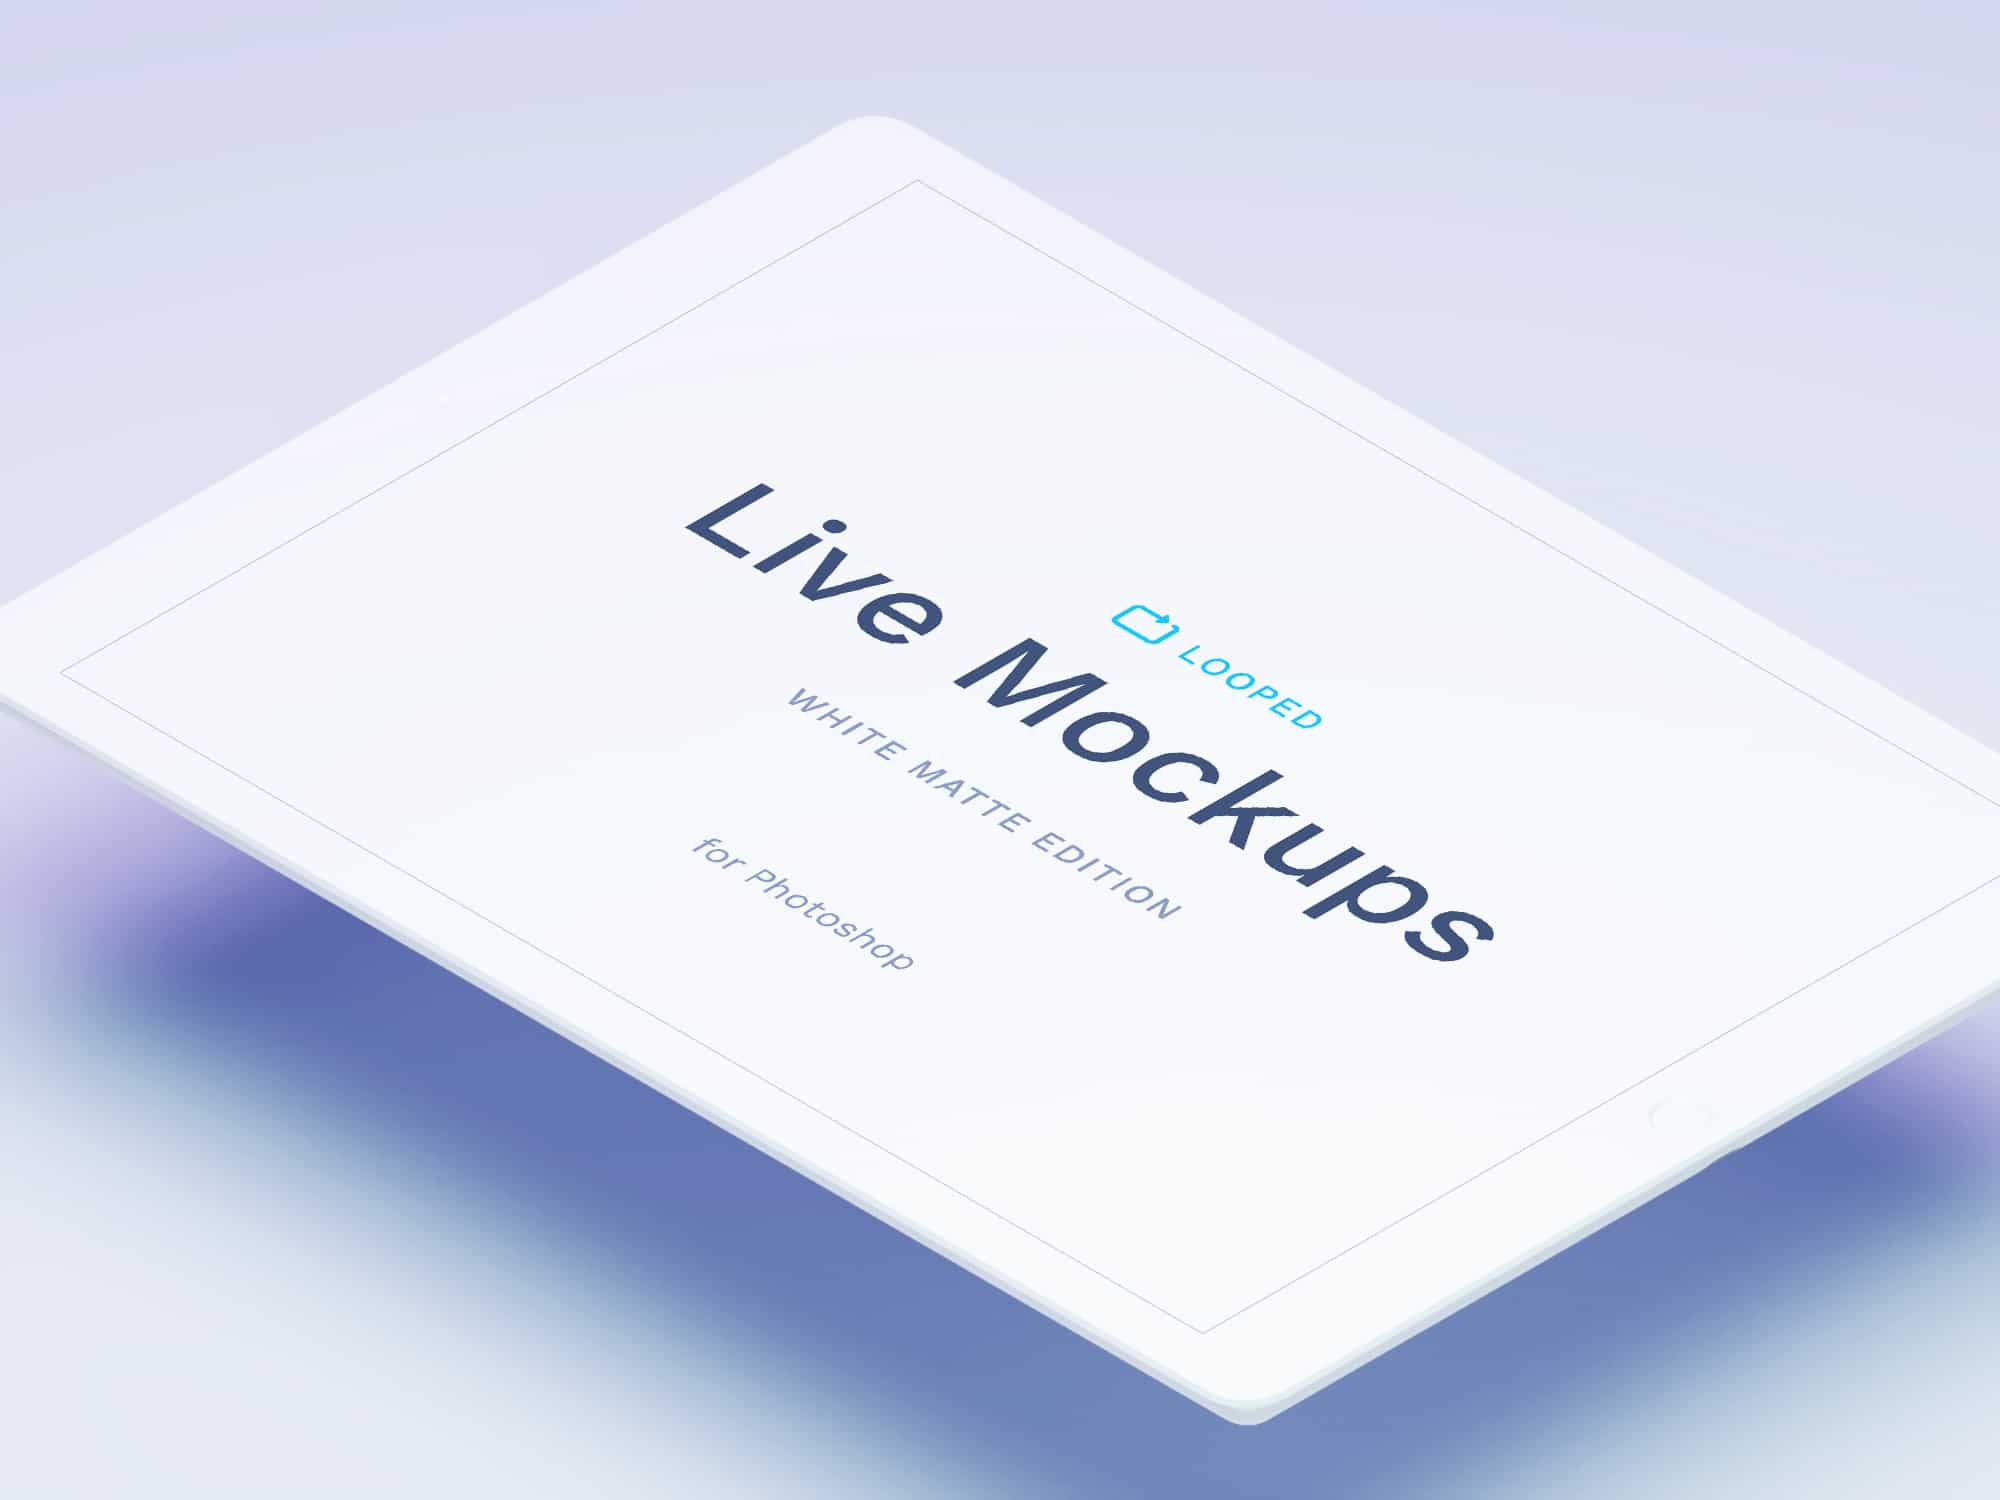 White Matte Apple Devices Mockups | The Mockup Club